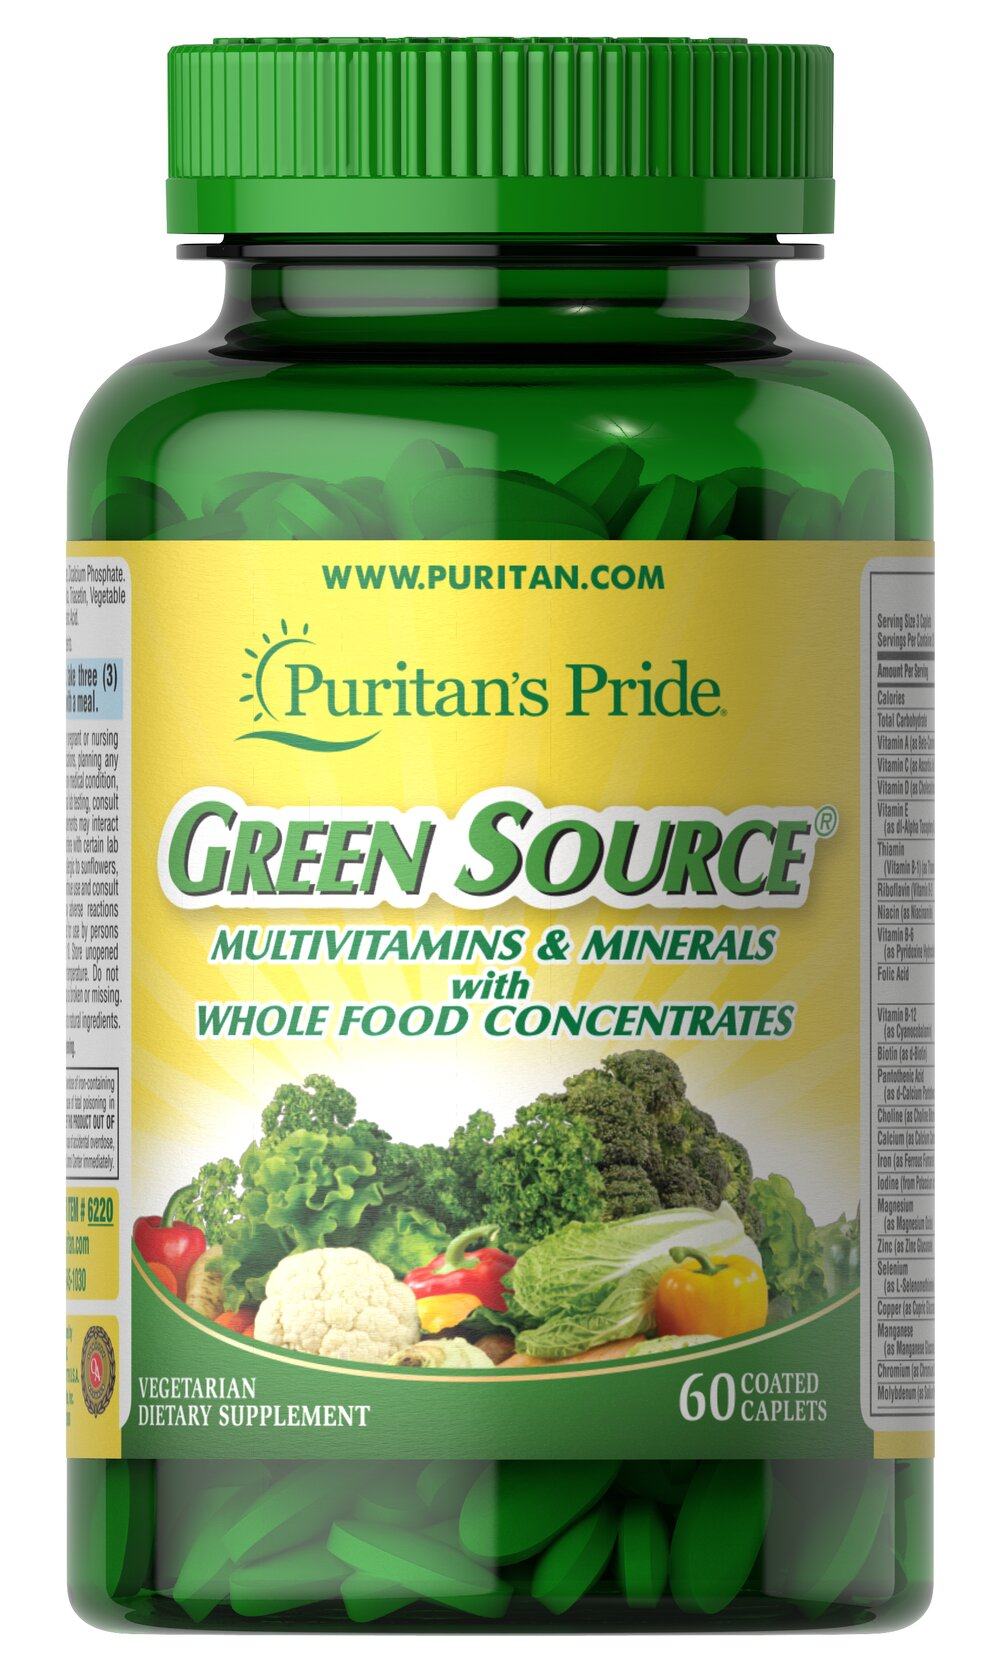 Green Source® Multivitamin & Minerals <p>This concentrated formula contains potent food source nutrients to provide essential vitamins, minerals, enzymes and amino acids. It also provides all the naturally occurring active constituents of whole foods.</p> 60 Caplets  $19.99